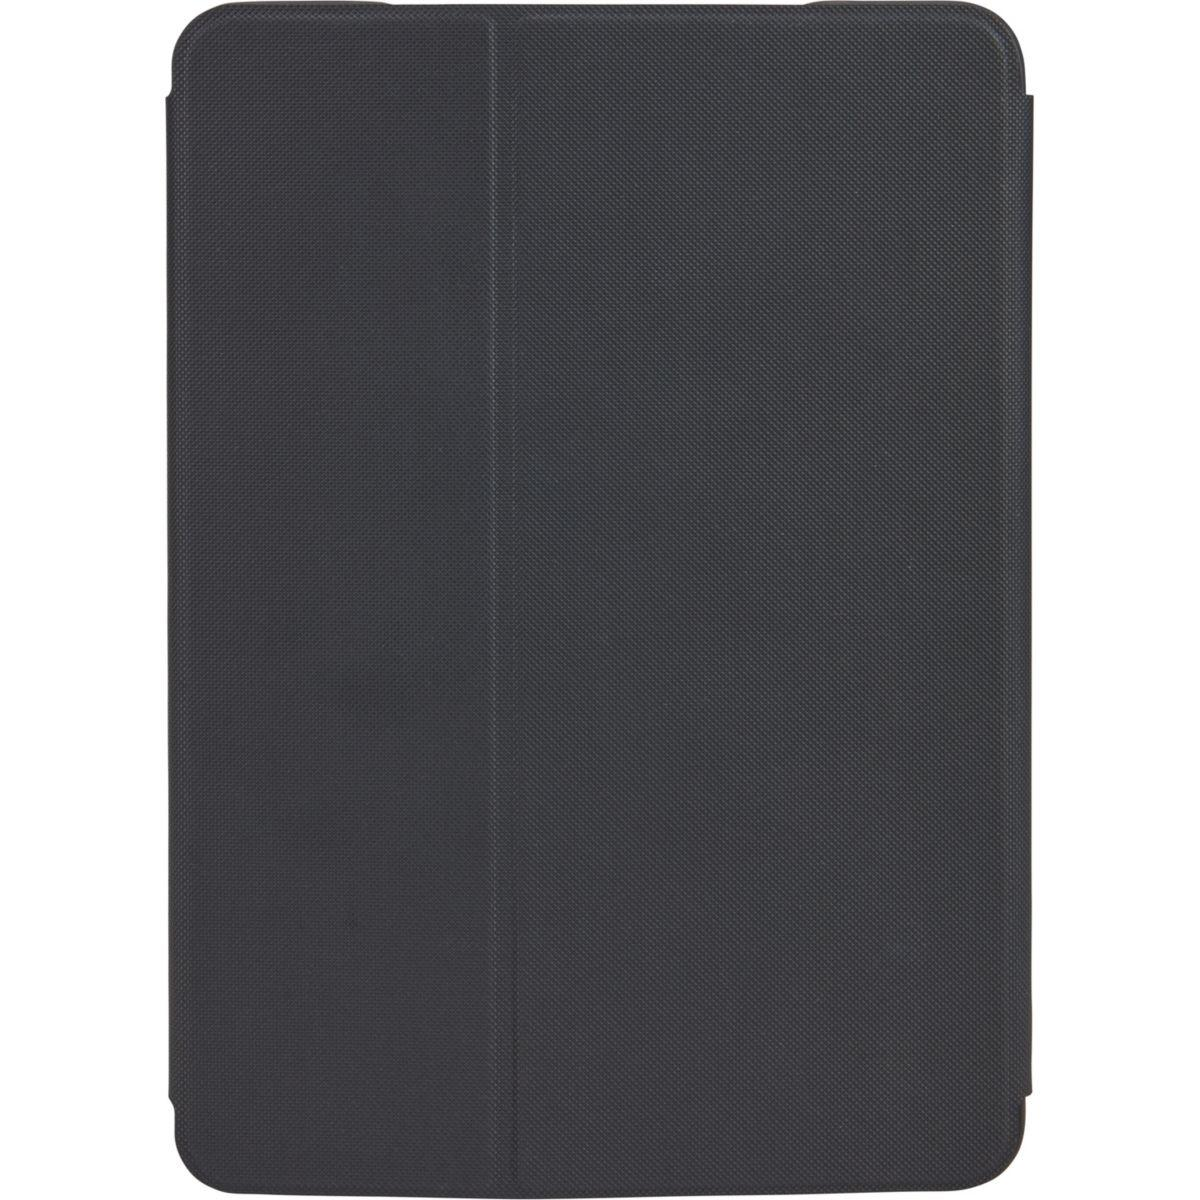 Folio caselogic new ipad noir - 20% de remise immédiate avec le code : cool20 (photo)